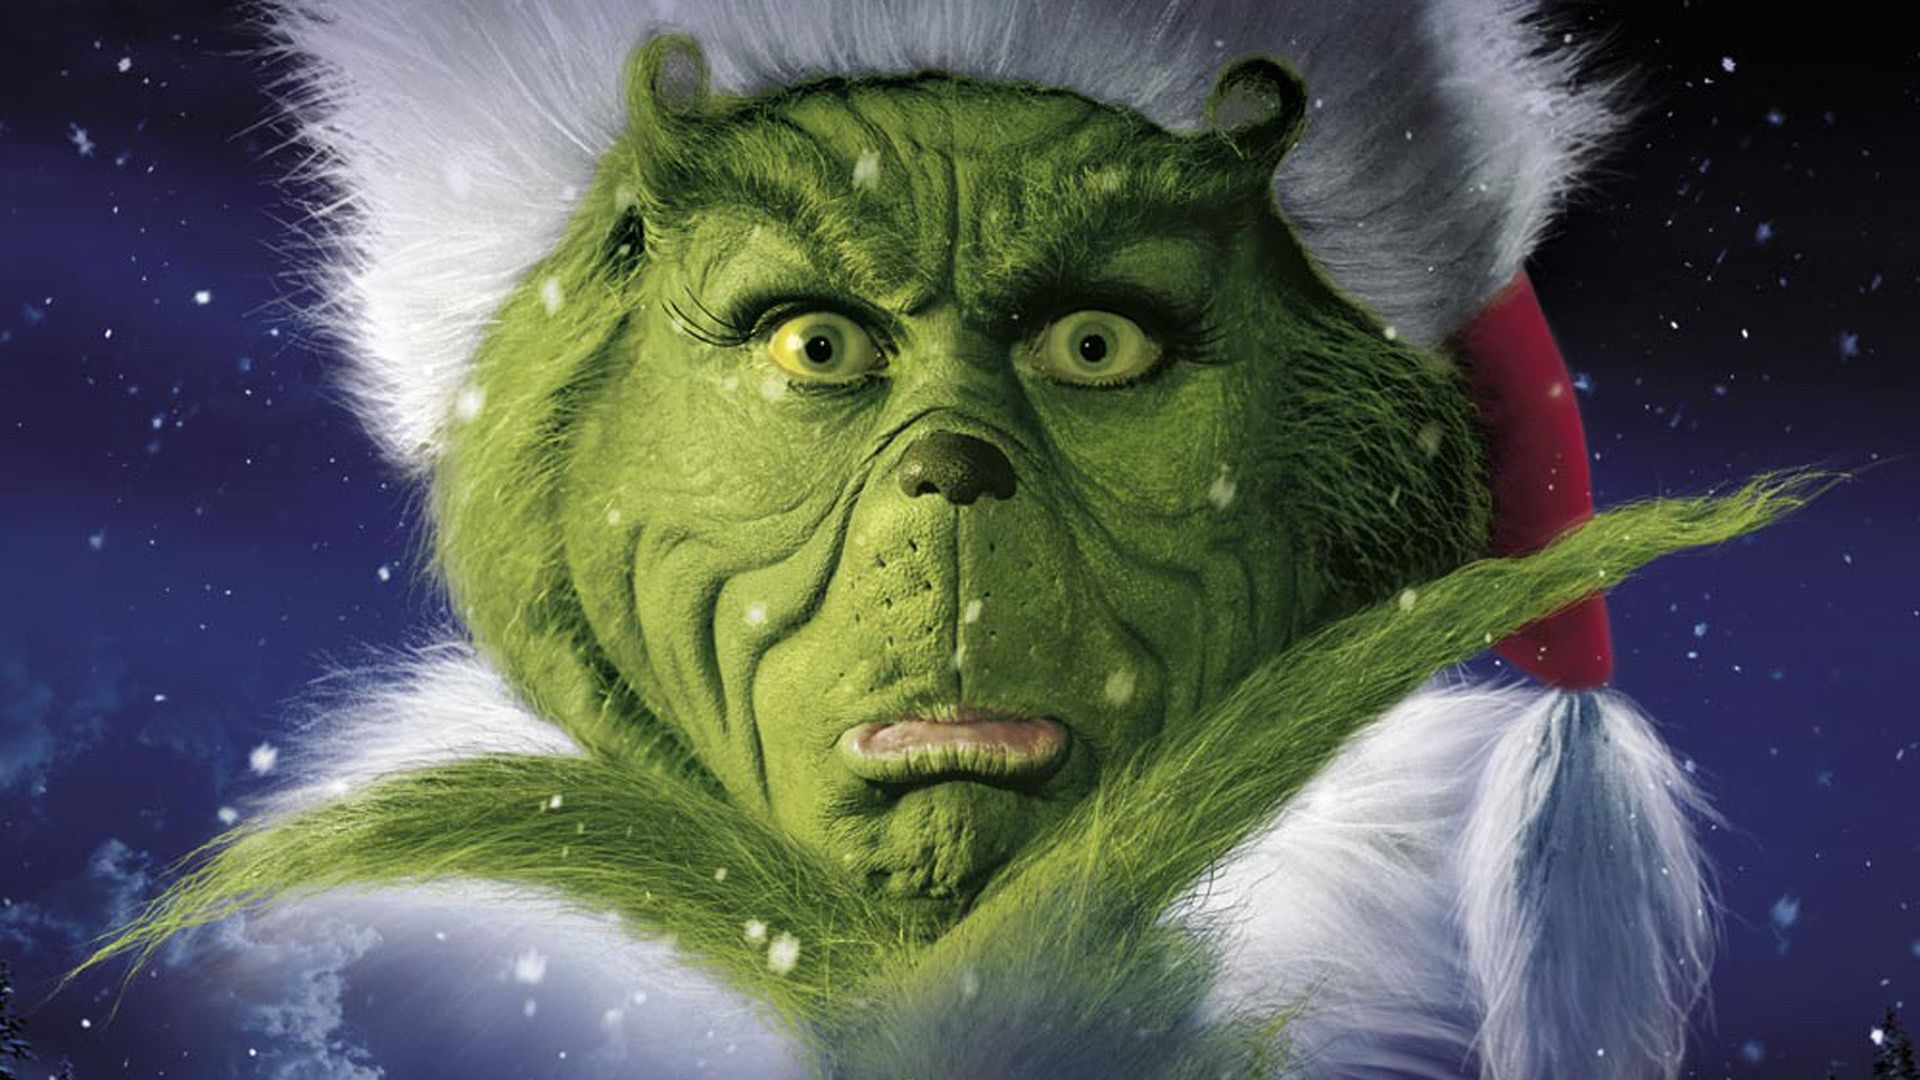 6361404666210563761153945952_the-grinch